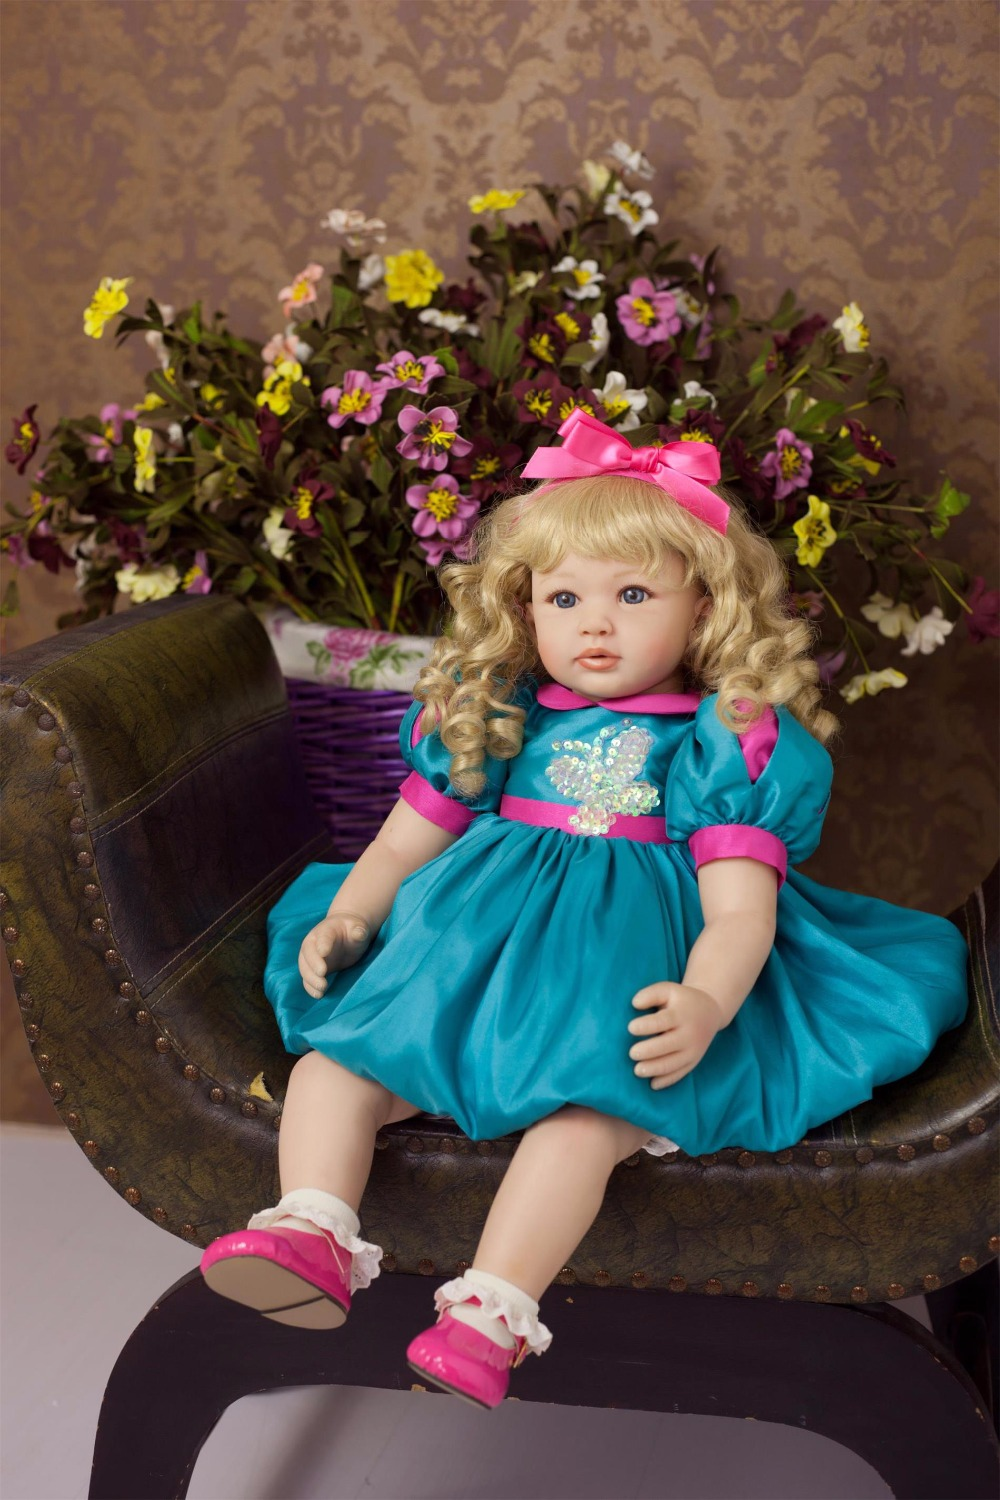 Hot Sale 55cm Silicone Vinyl Reborn Baby Doll Lifelike Toddler Baby Doll Girls Brinquedos Best Birthday Gift Play Doll Toys hot sale 1000g dynamic amazing diy educational toys no mess indoor magic play sand children toys mars space sand